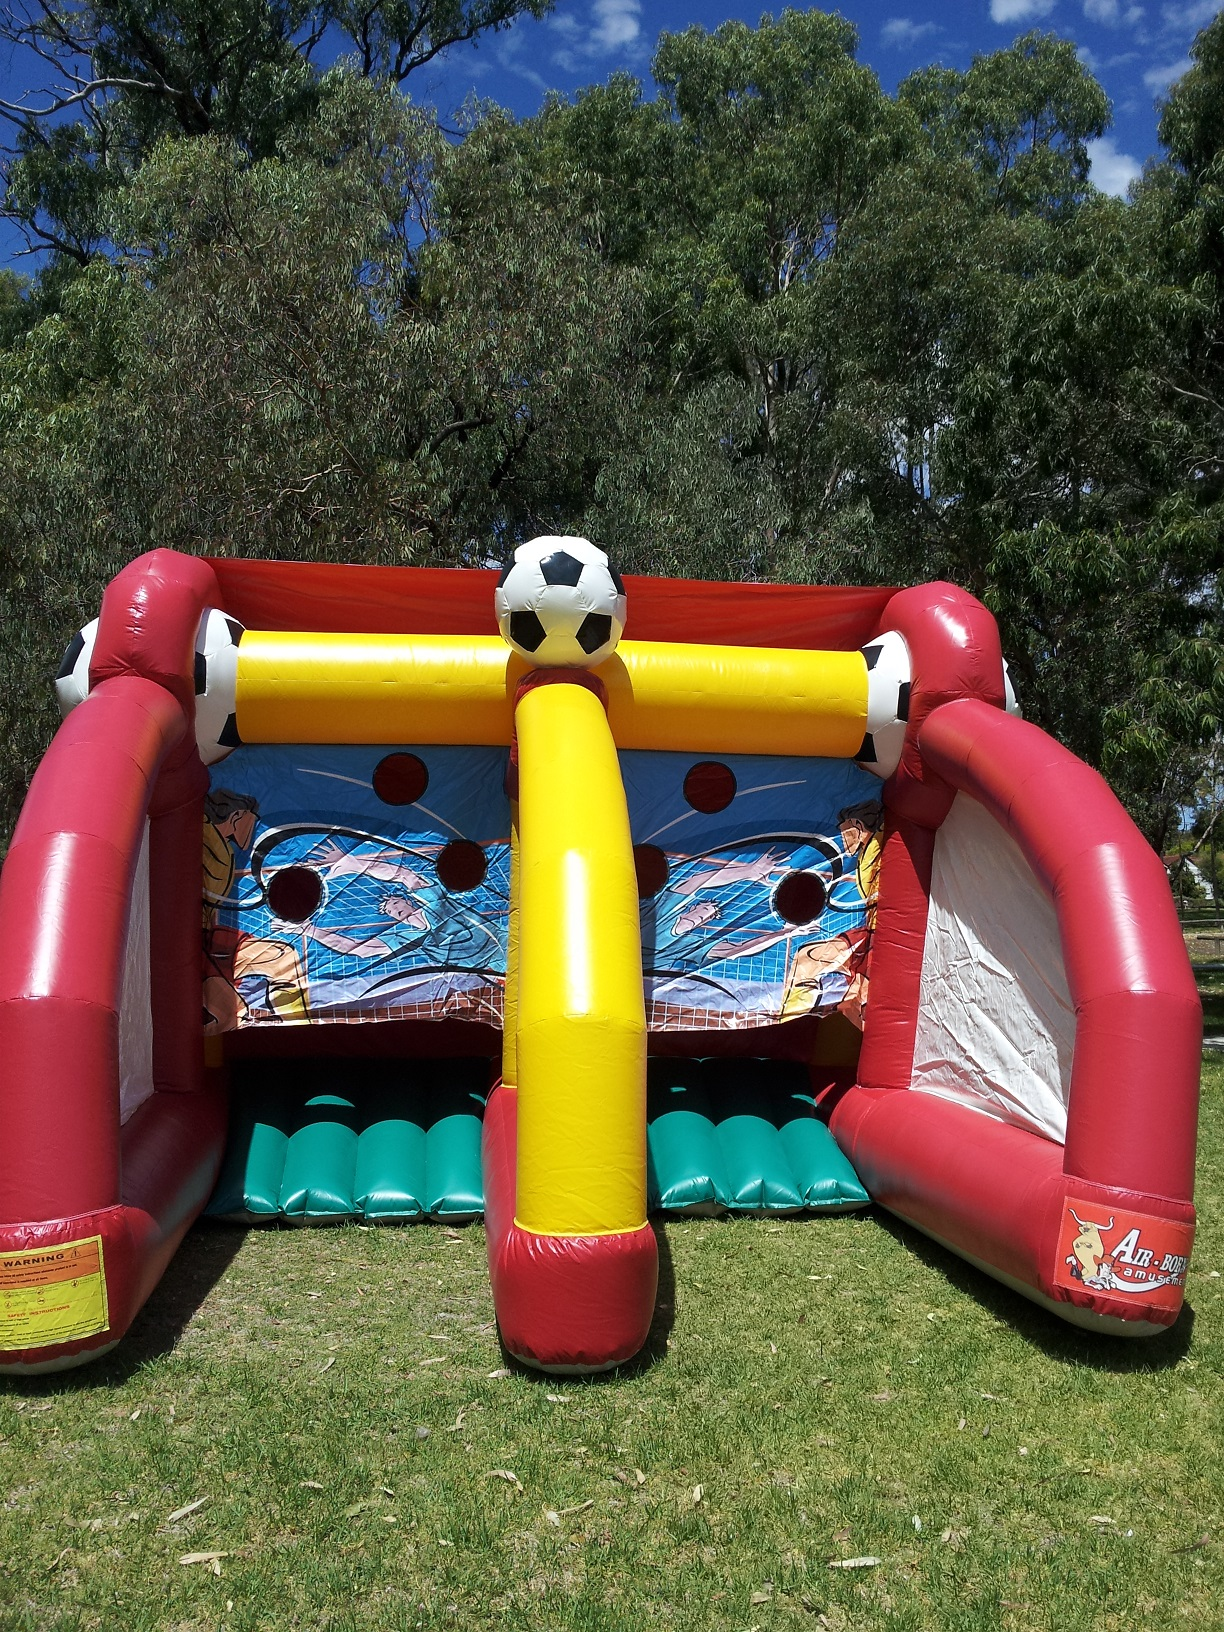 Soccer Challenge is free to hire as part of our Triple Bounce package deal - OR$200 AS PART OF OUR DOUBLE BOUNCE PACKAGE DEAL